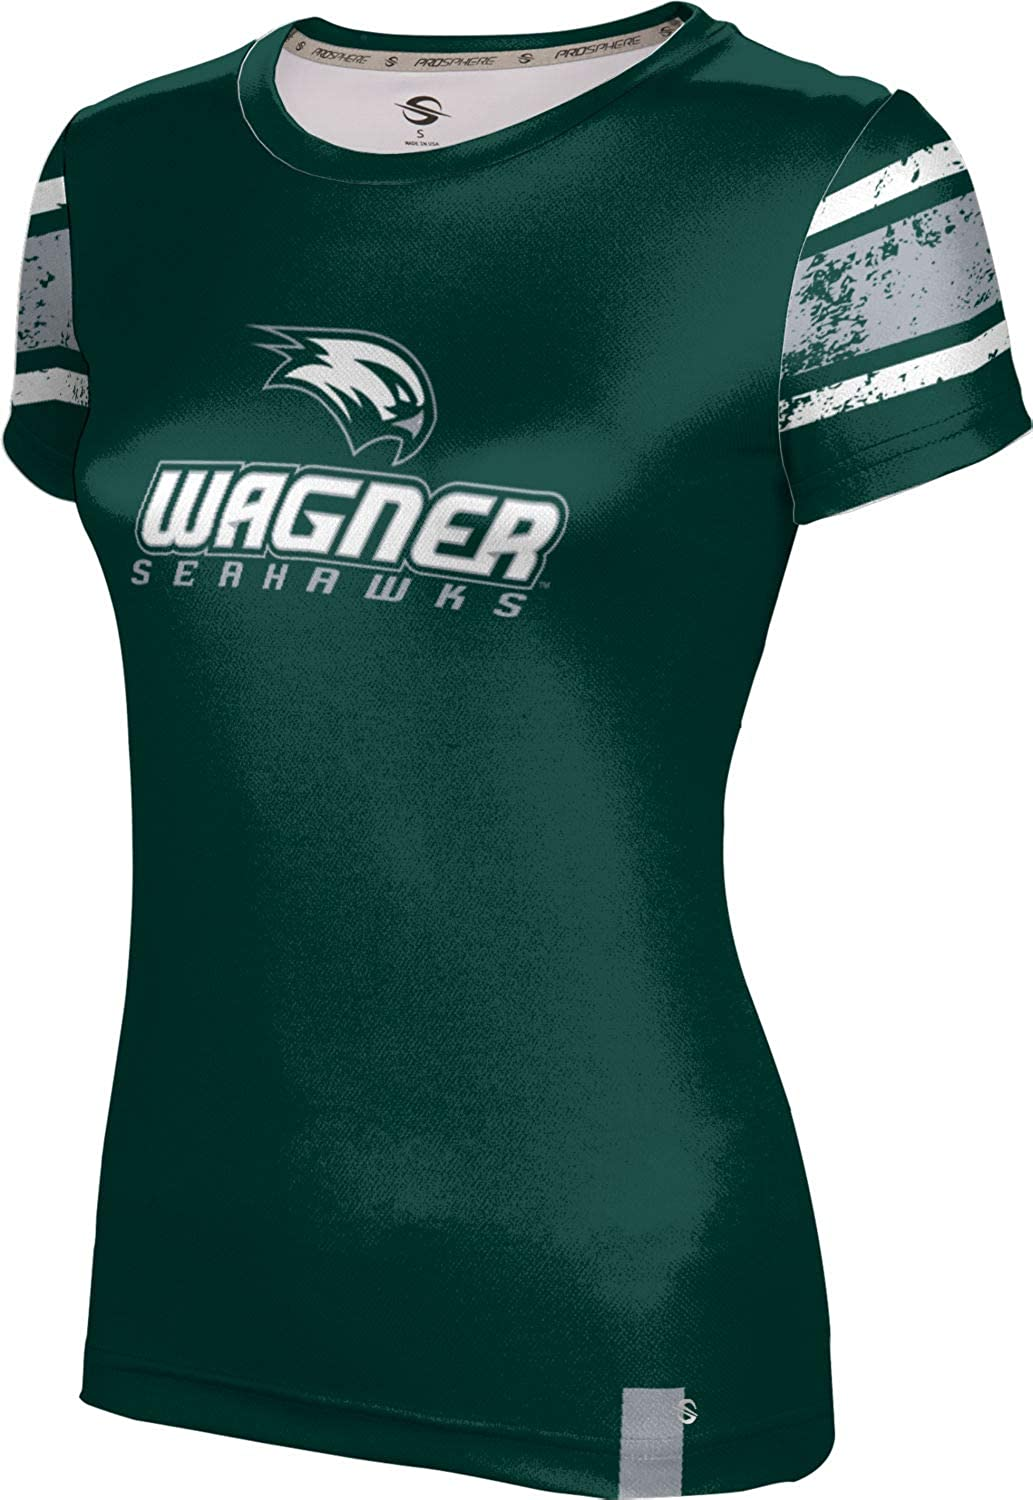 ProSphere Wagner College Girls' Performance T-Shirt (End Zone)